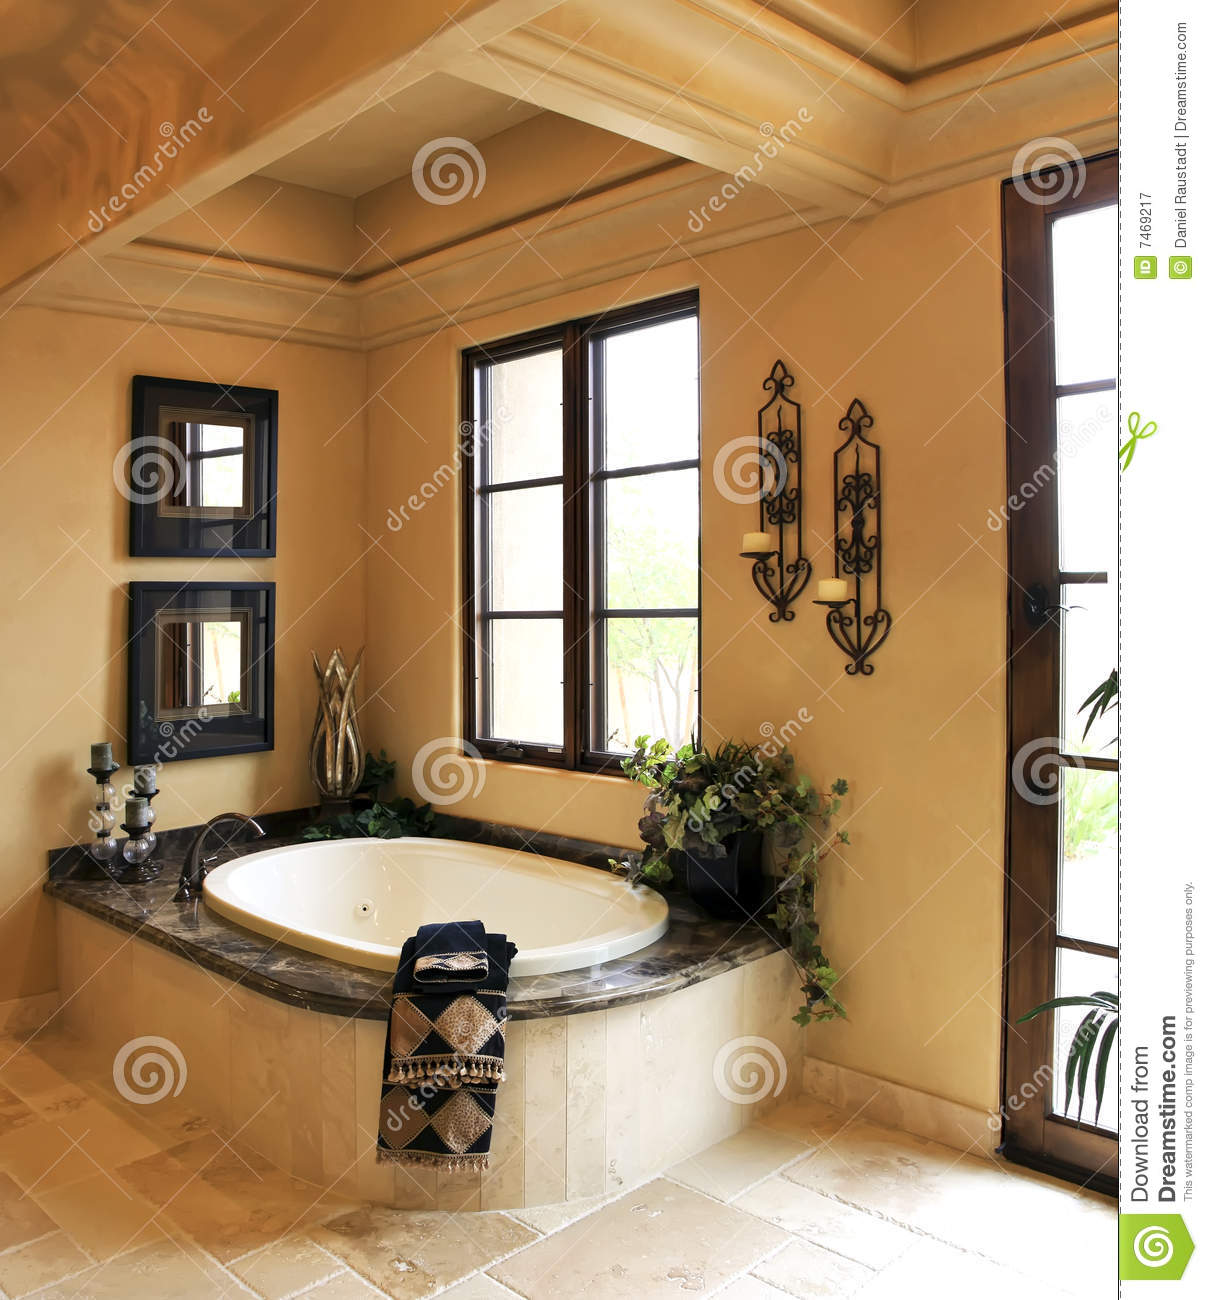 Resort Mansion Bathroom Spa Stock Image  Image 7469217